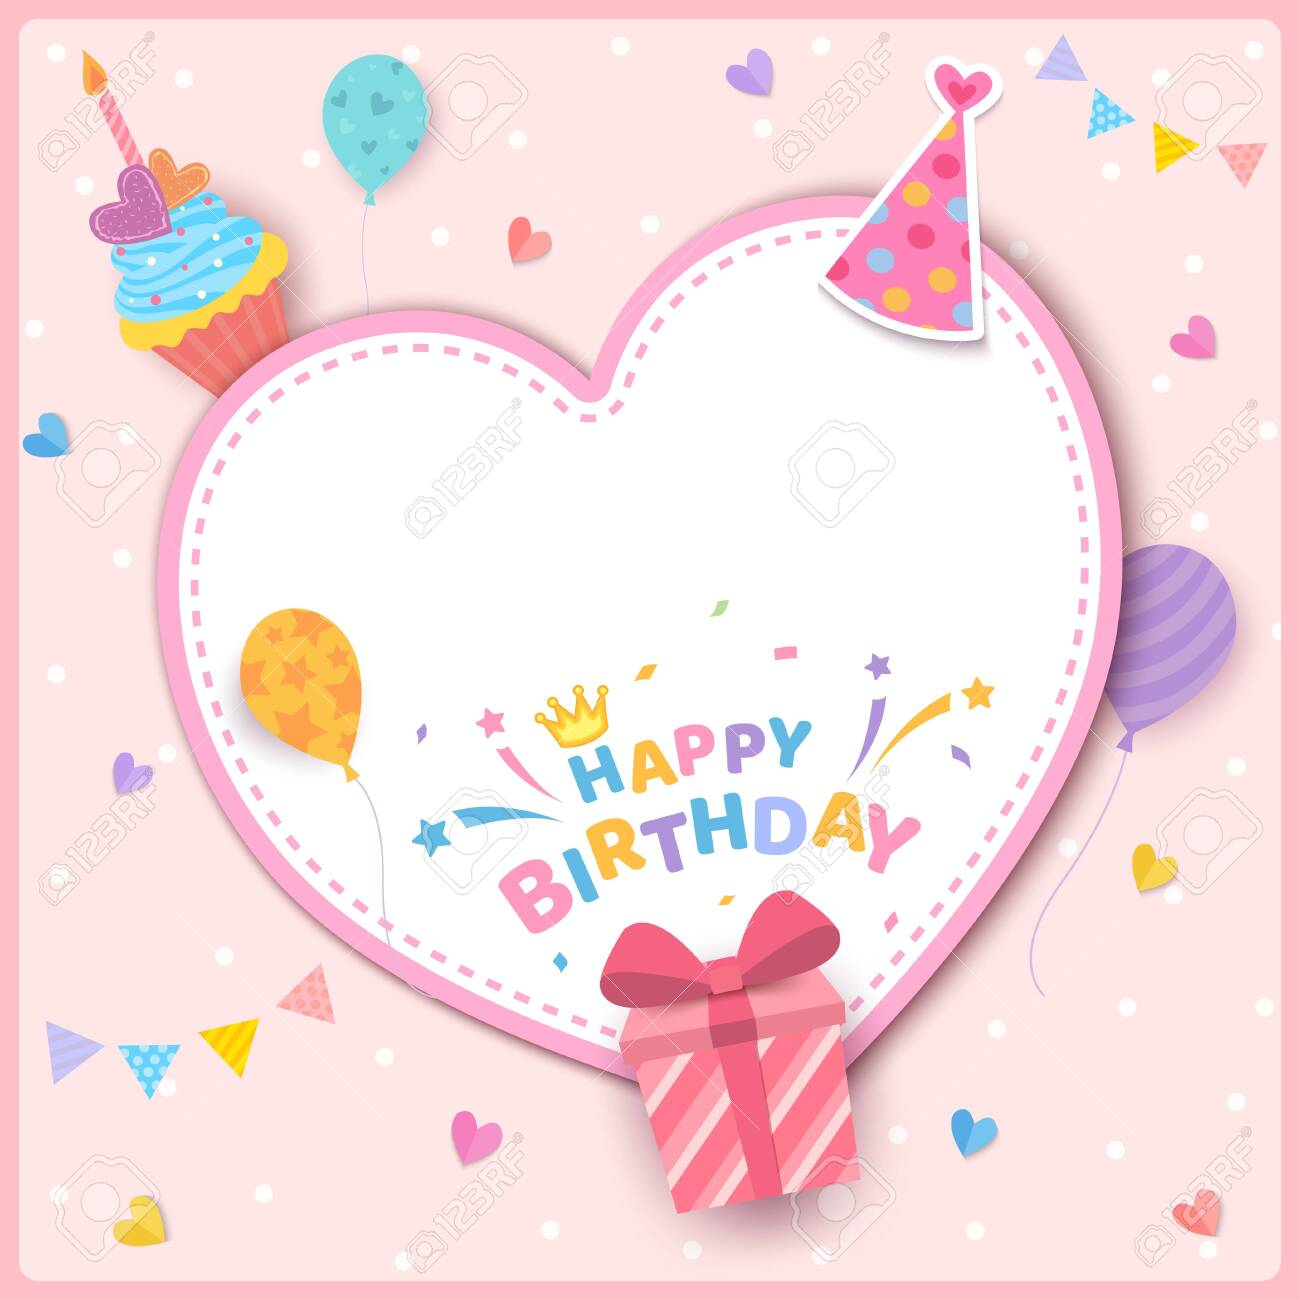 Peachy Happy Birthday Greeting Card Design With Heart Frame Decorated Personalised Birthday Cards Paralily Jamesorg